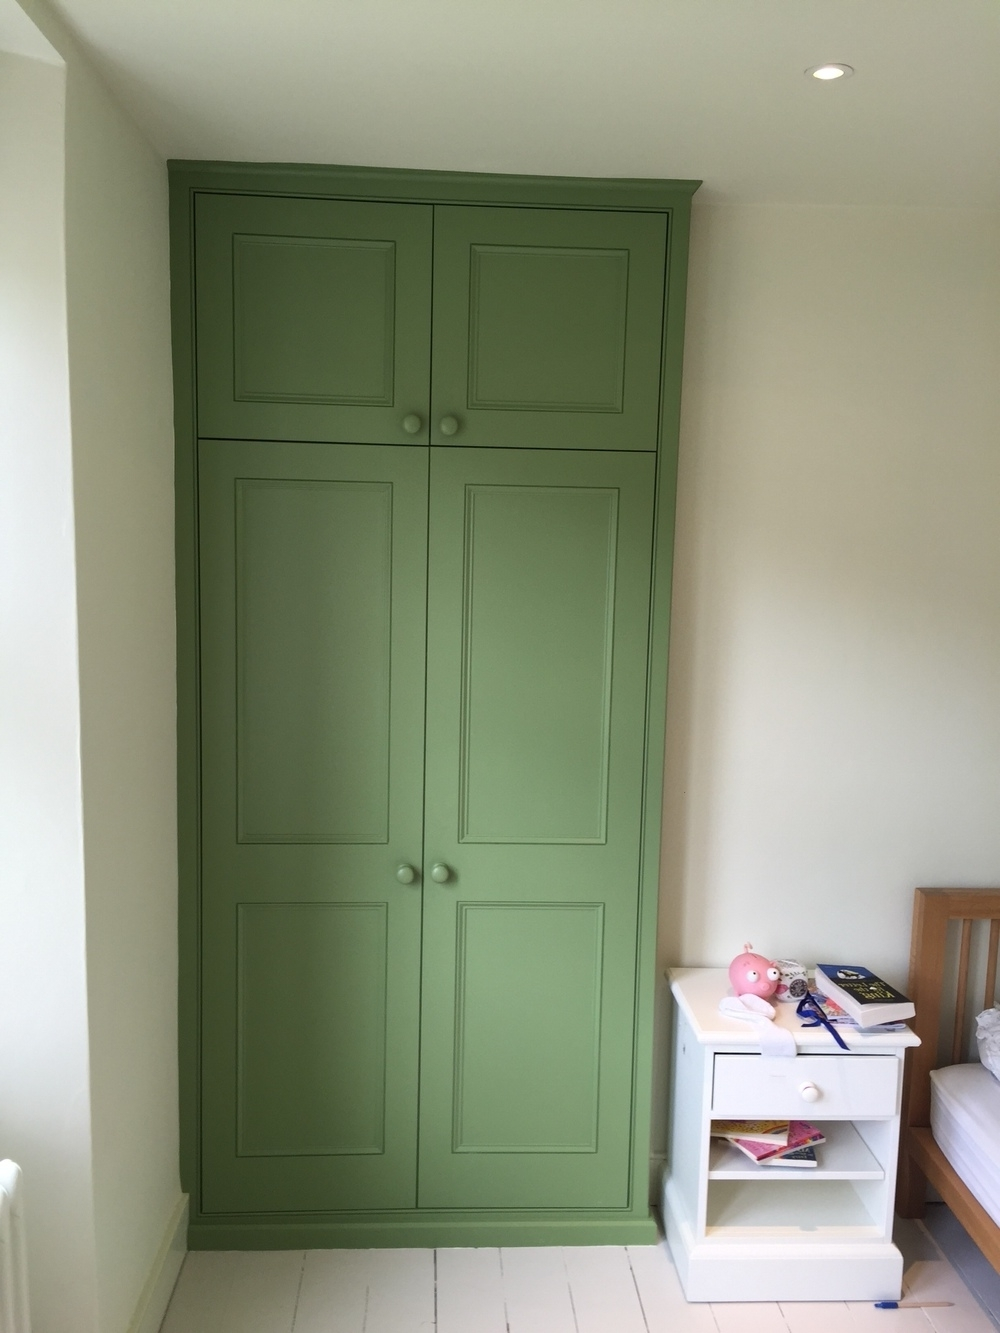 Famous Victorian Wardrobes For Wardrobes — Oliver Hazael Bespoke Carpentry (View 5 of 15)